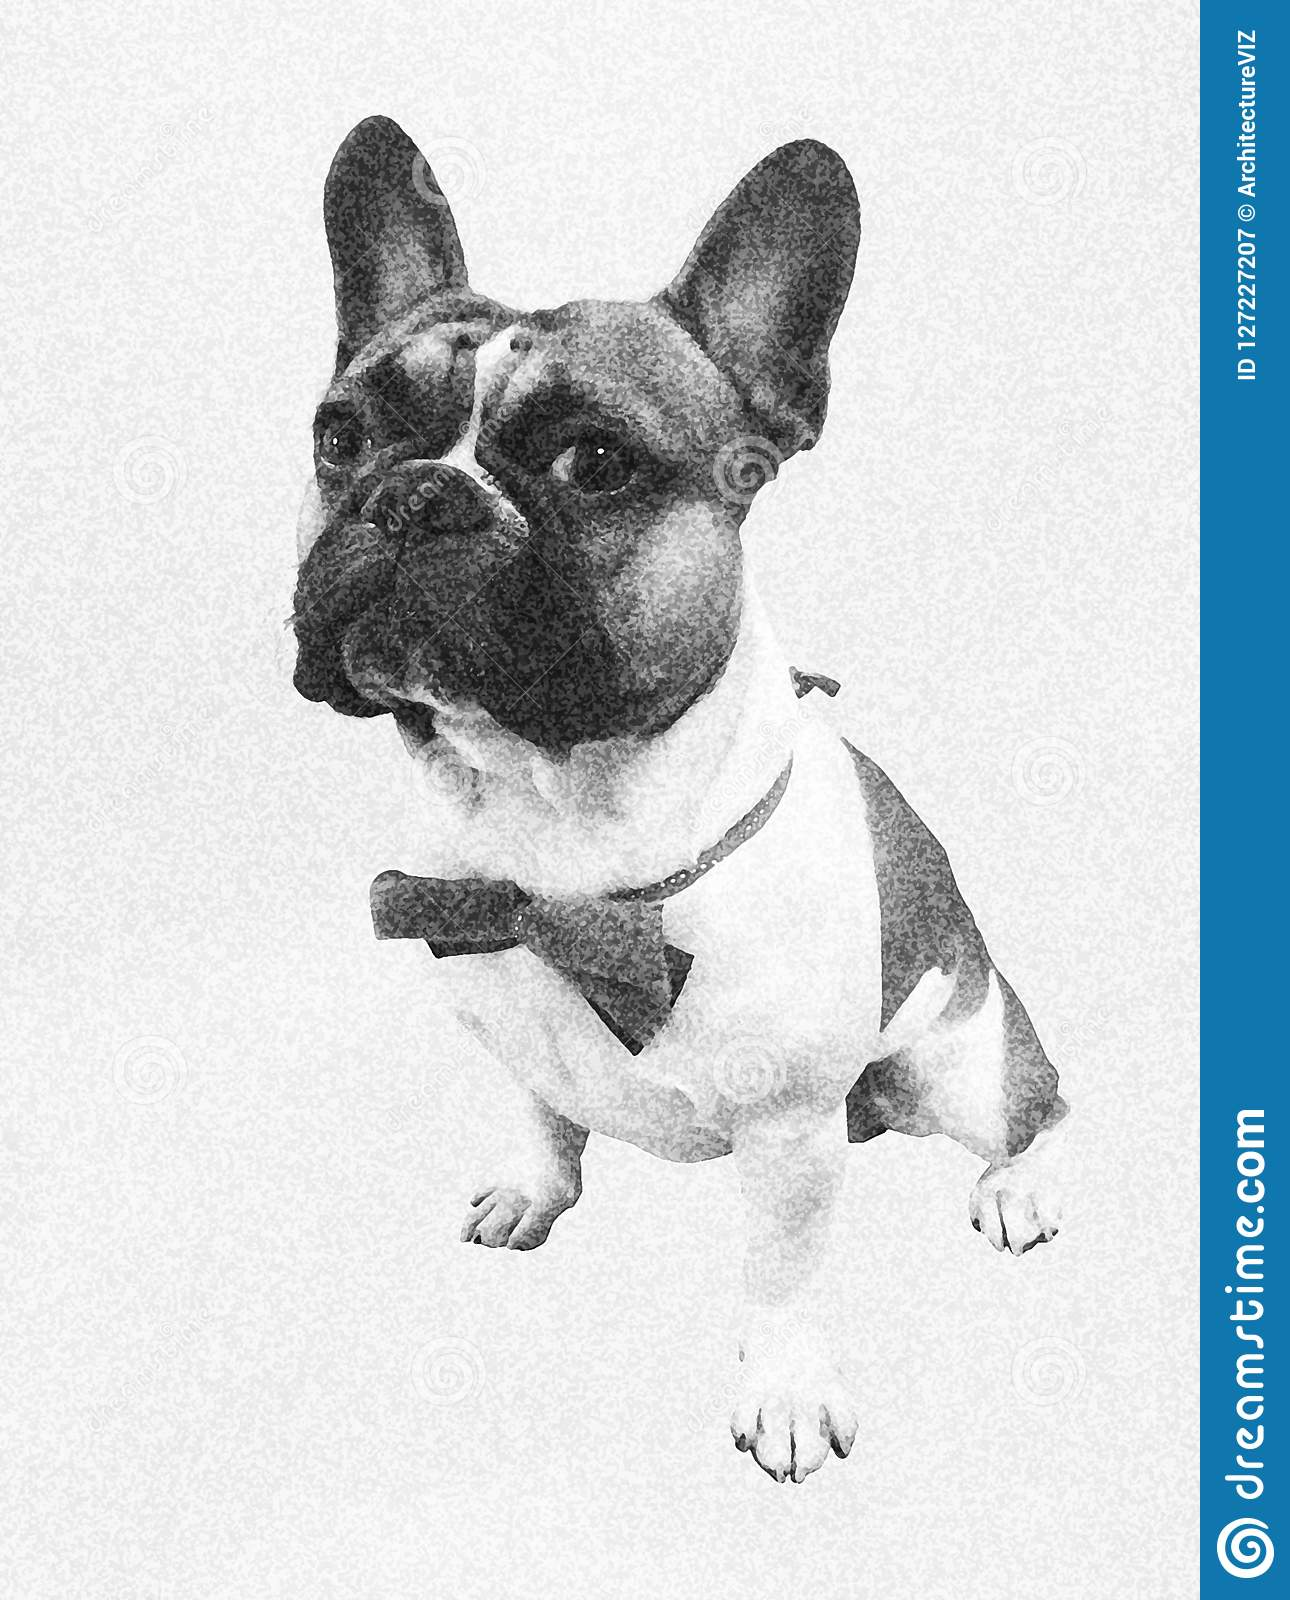 Cute french bouledogue bulldog sitting, dressed up for a party with little bow-tie, on white background